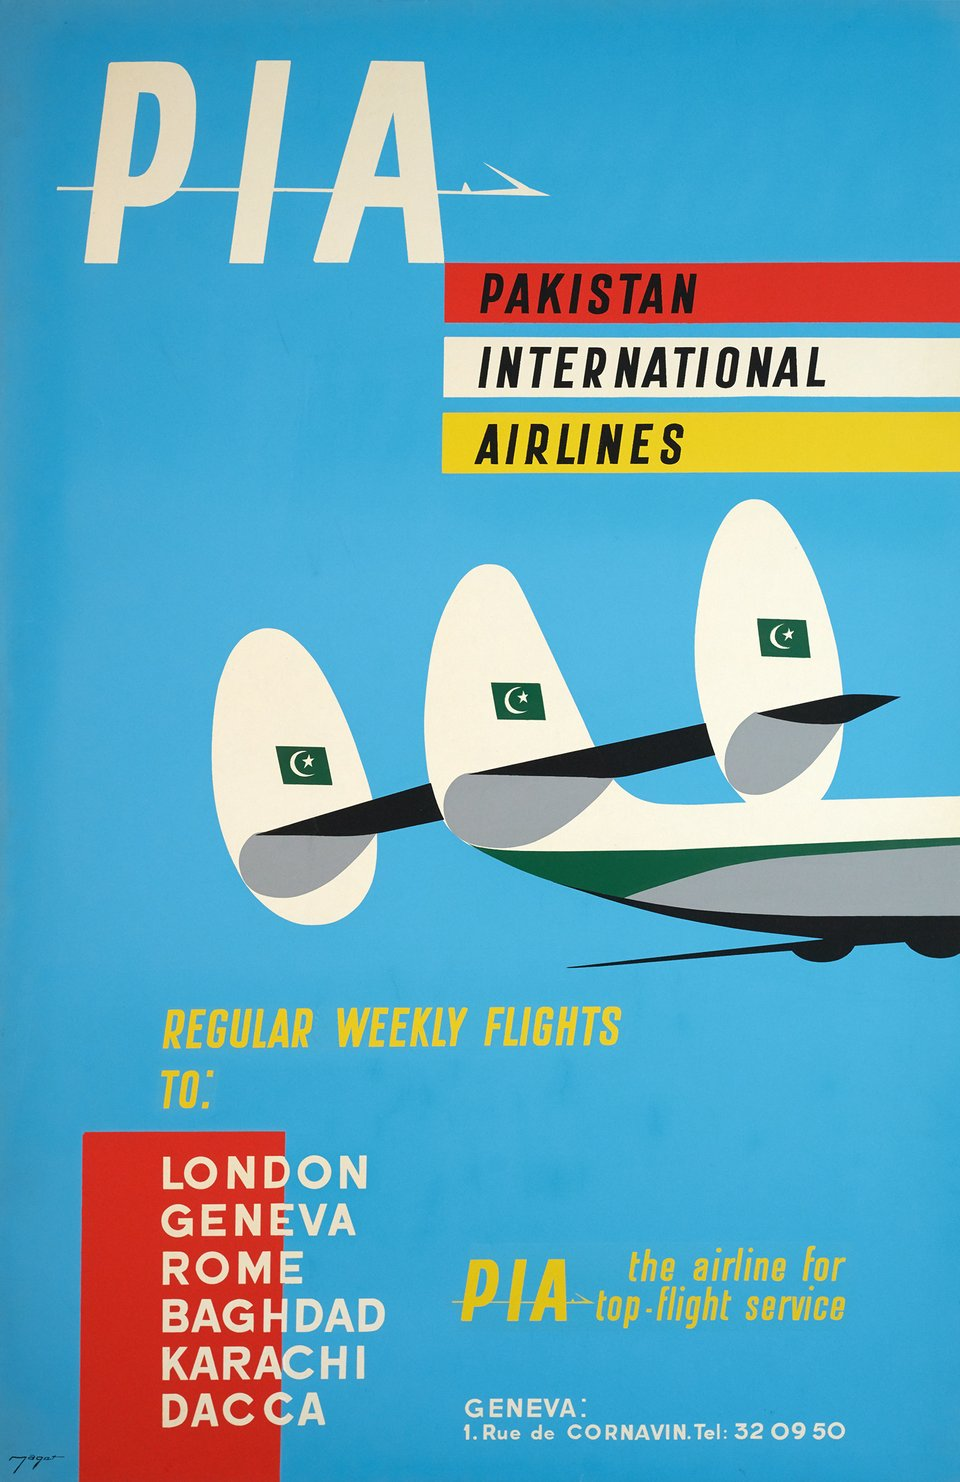 PIA, Pakistan International Airlines, Regular weekly flights to London, Geneva, Rome, Baghdad, Karachi, Dacca – Affiche ancienne – MAGET – 1960